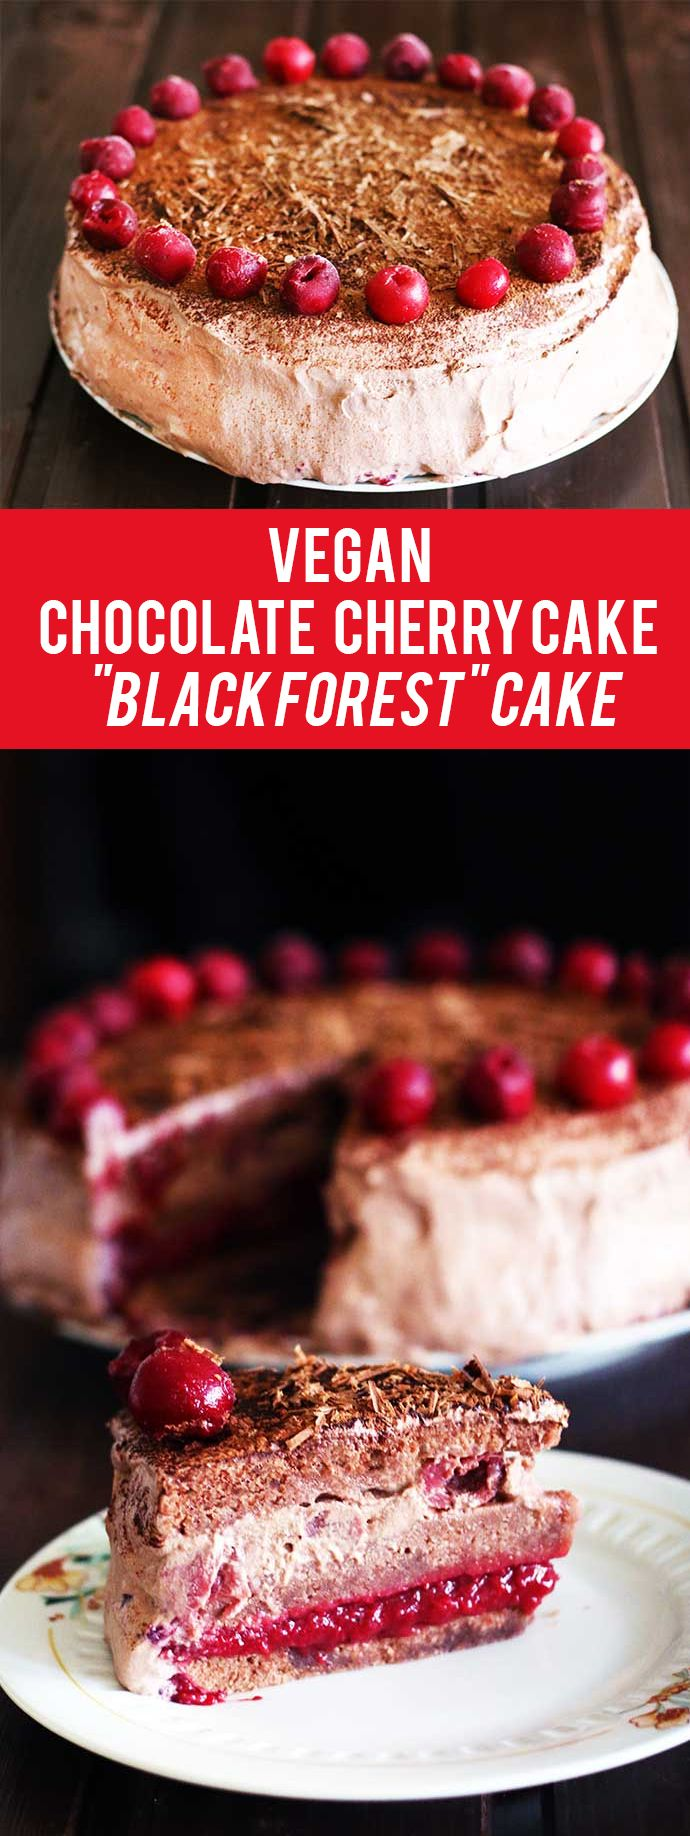 """This vegan chocolate cherry cake has a rich chocolate flavor that goes perfectly with the subtle sour taste given by the sour cherries. It's similar to the popular """"Black Forest"""" cake recipe.  http://gourmandelle.com/vegan-chocolate-cherry-cake/"""